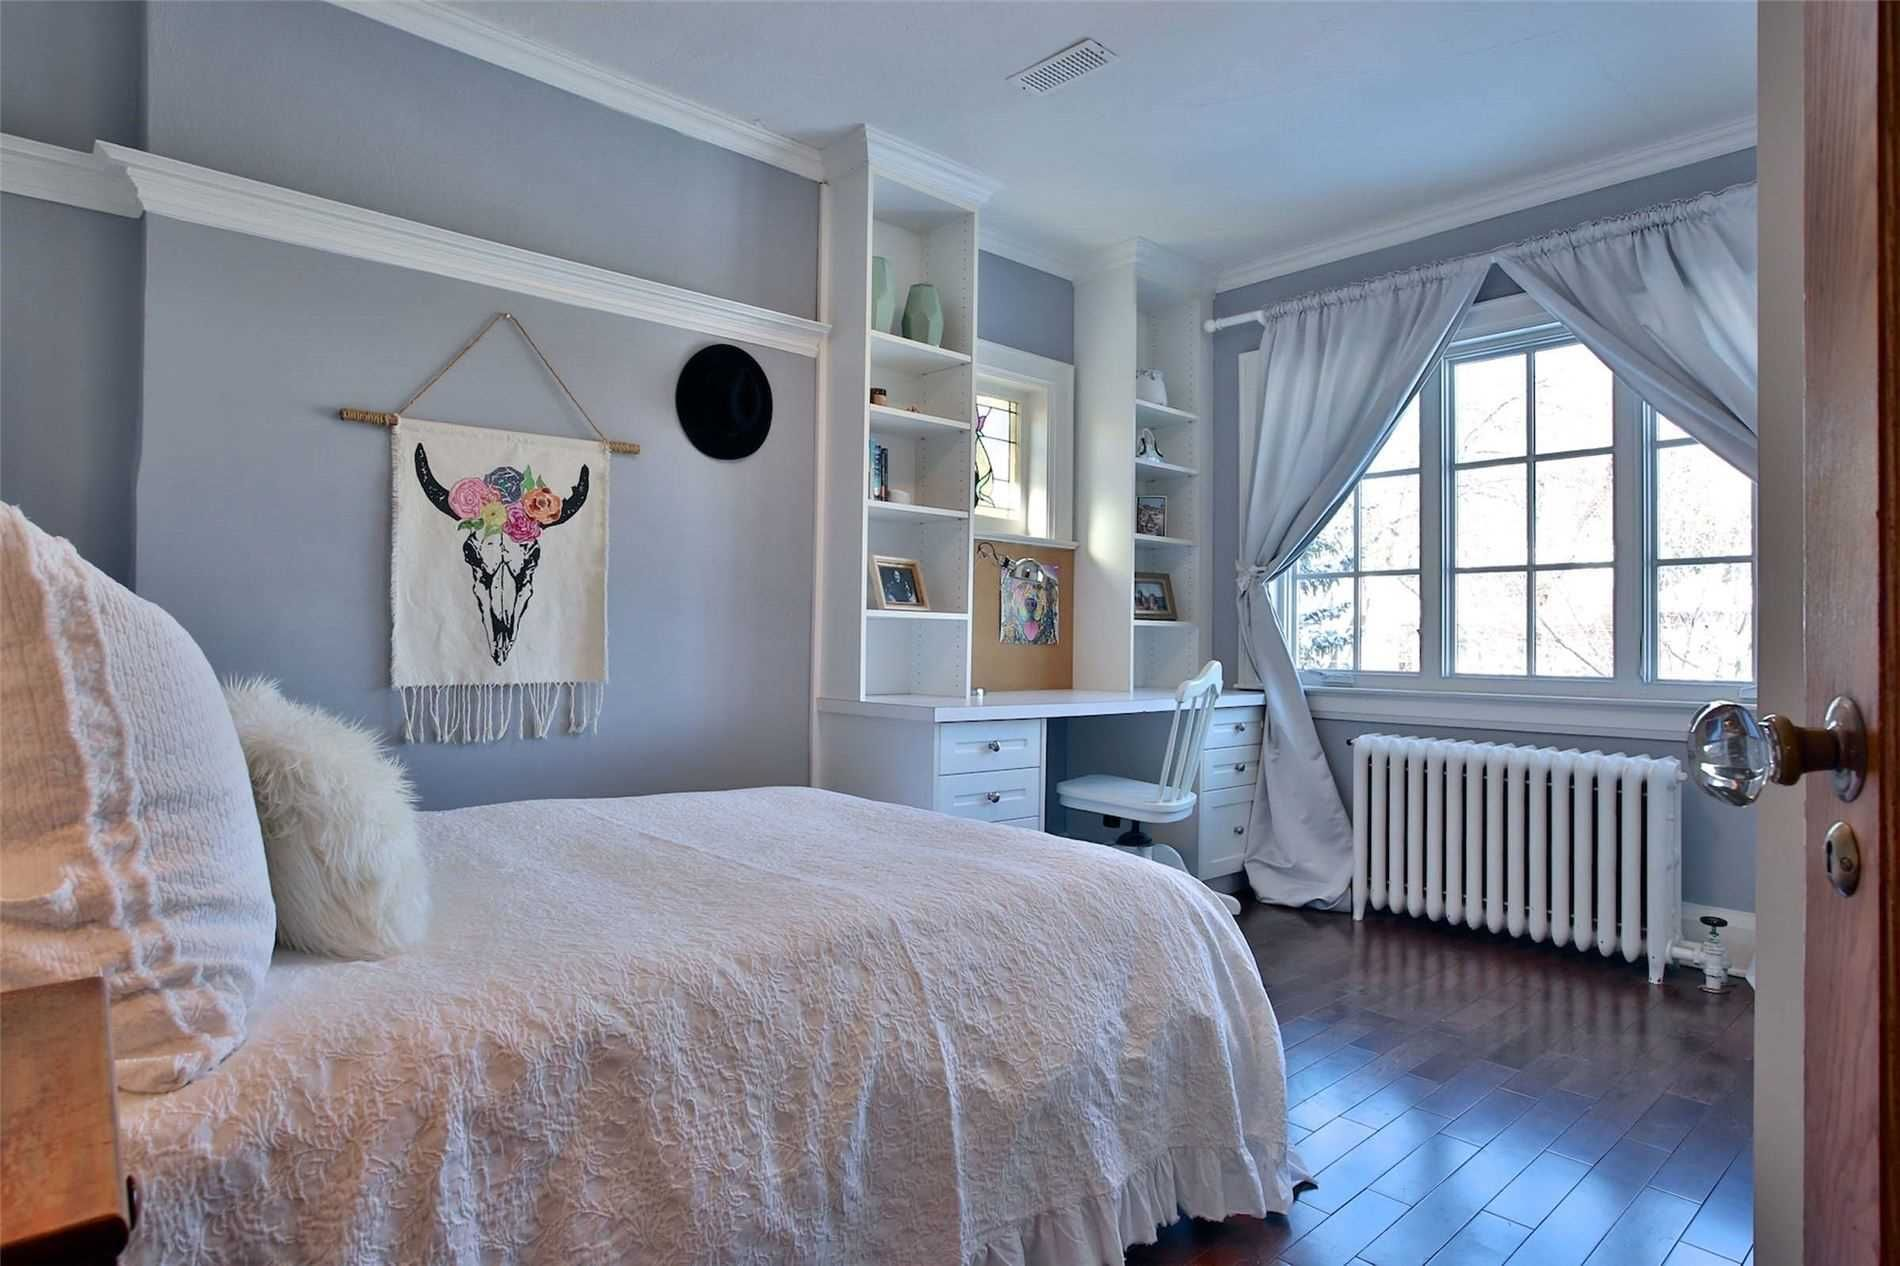 Photo 14: Photos: 181 W Glengrove Avenue in Toronto: Lawrence Park South House (2-Storey) for sale (Toronto C04)  : MLS®# C4633543